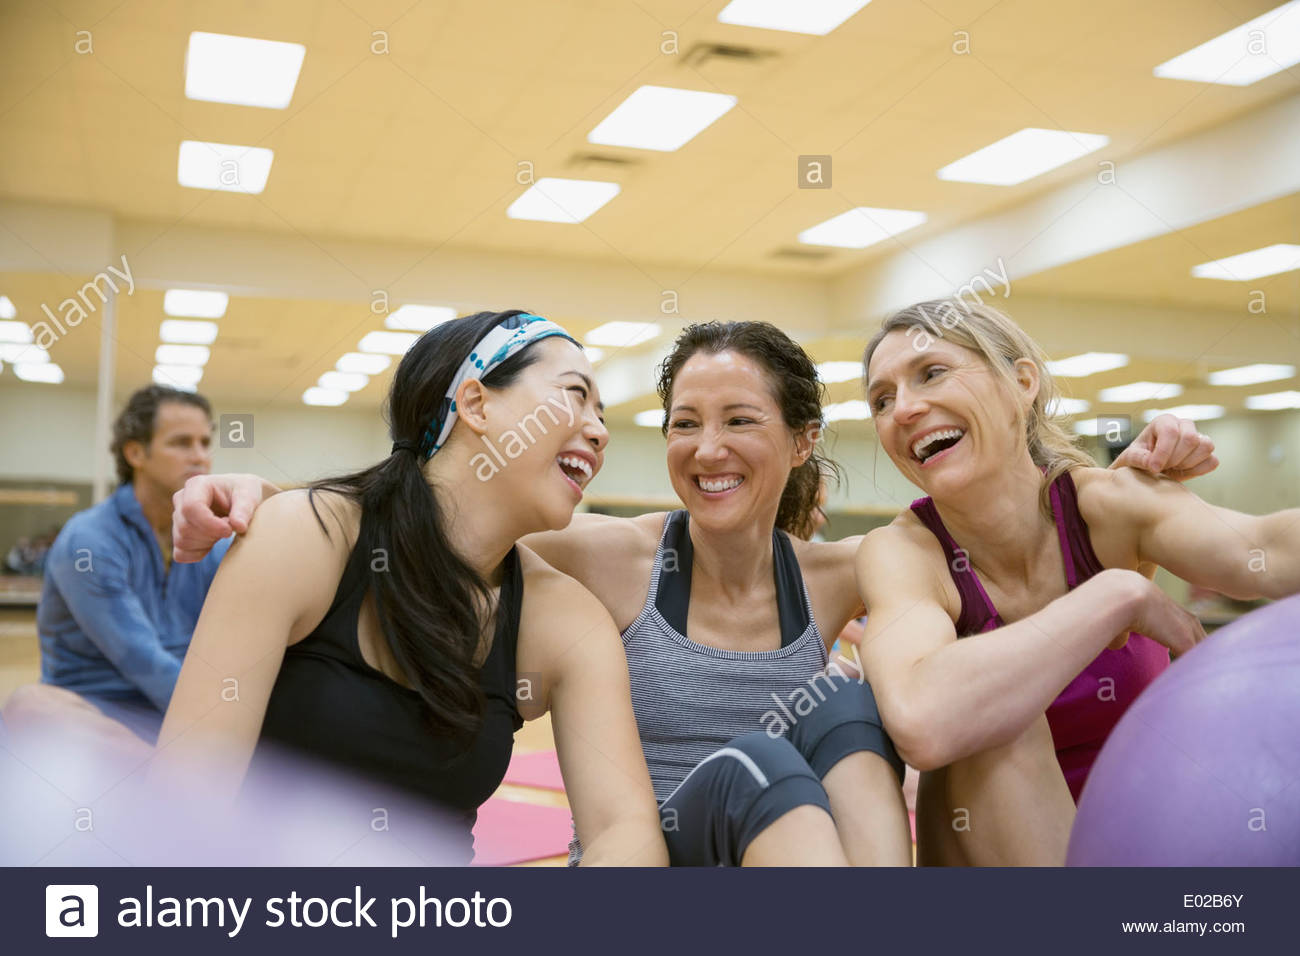 Women laughing in exercise class - Stock Image